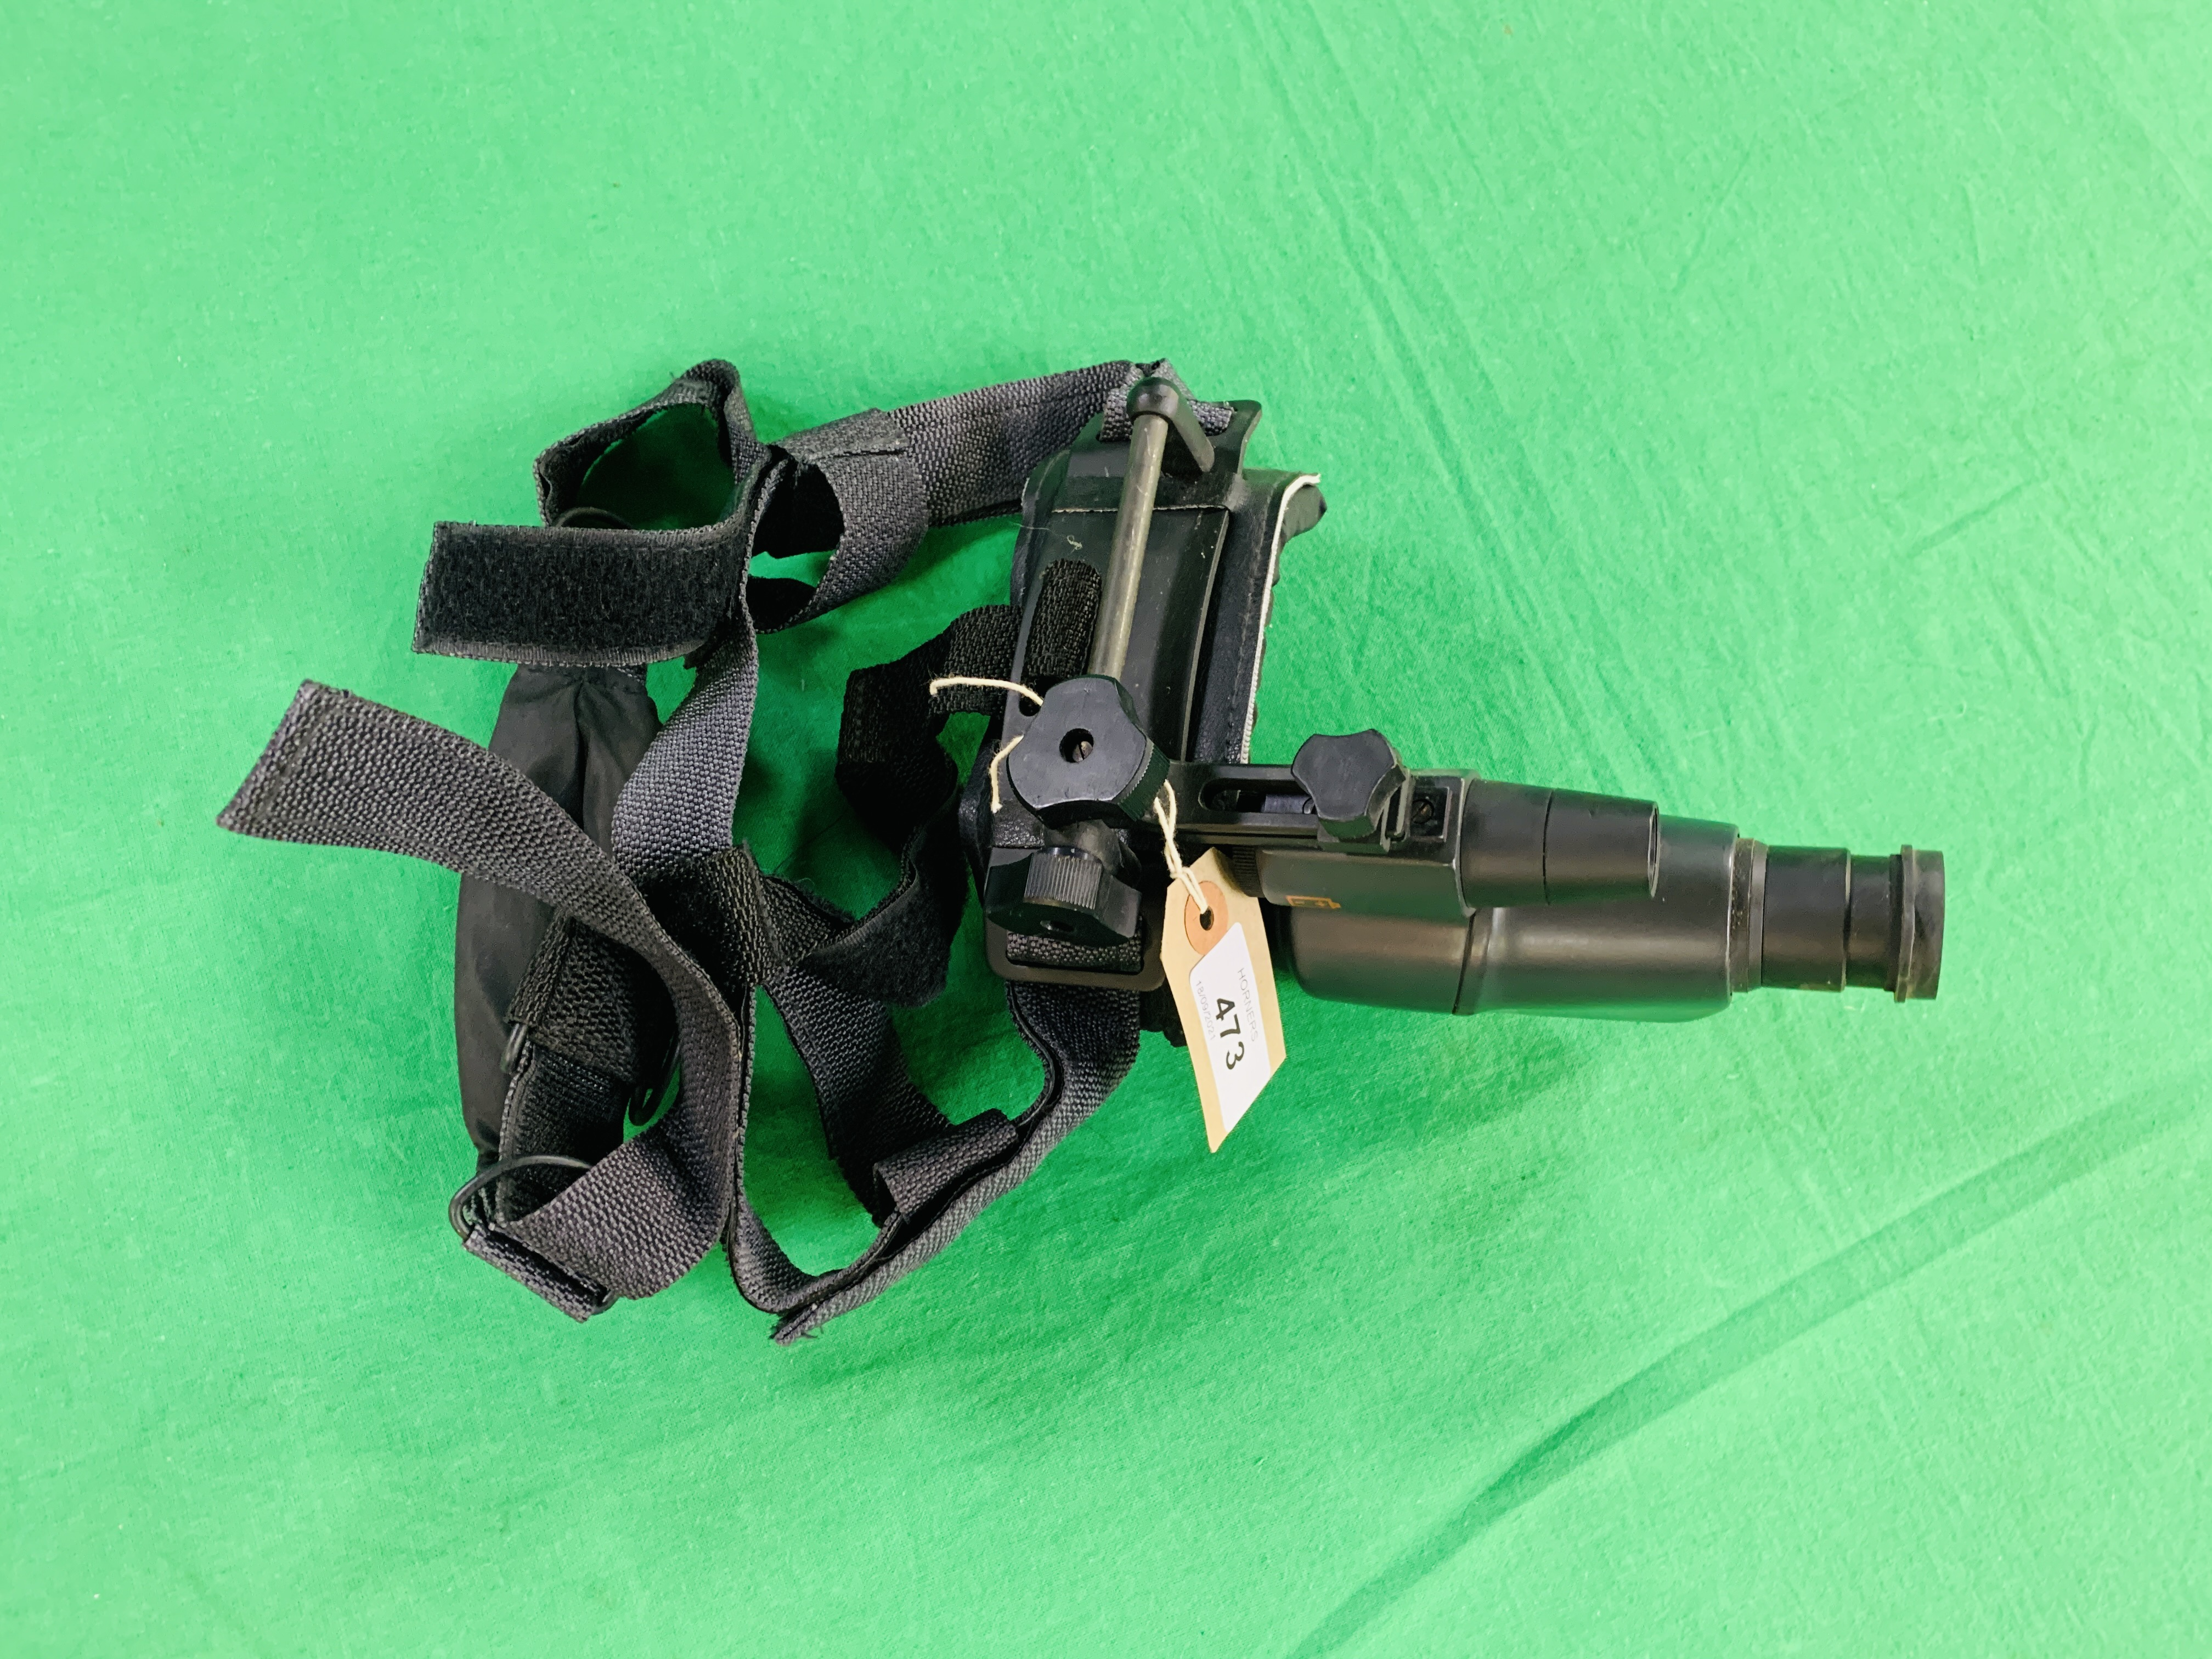 A ATN VIPER NIGHT VISION MONOCULAR INFERRED SITE WITH HEAD BAND - Image 5 of 6